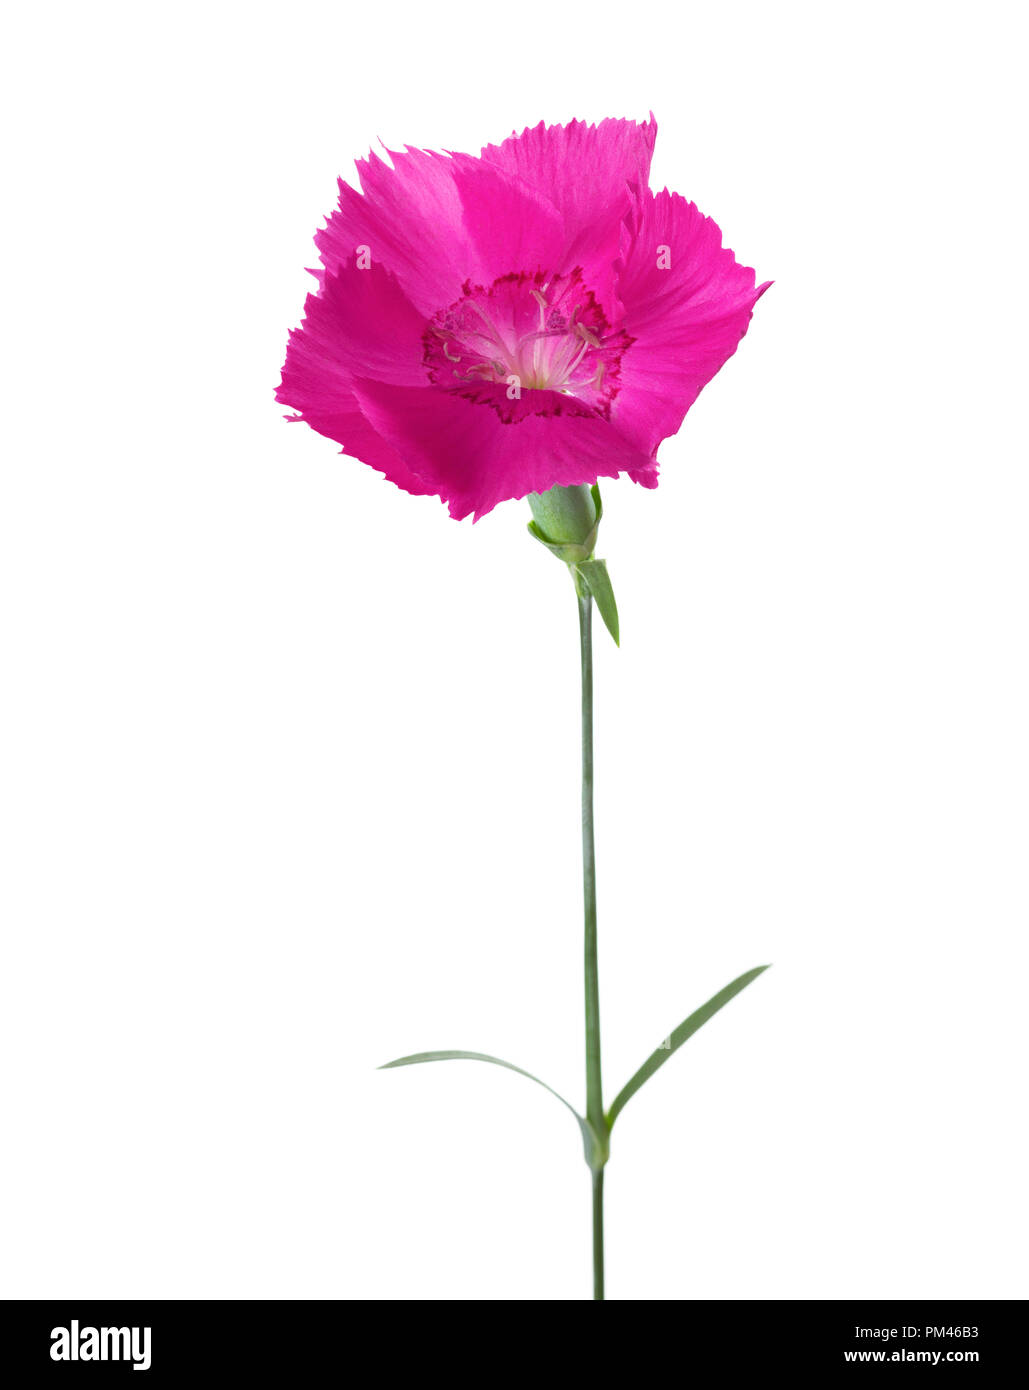 Carnation flower  of magenta color isolated on white background. Dianthus - Stock Image